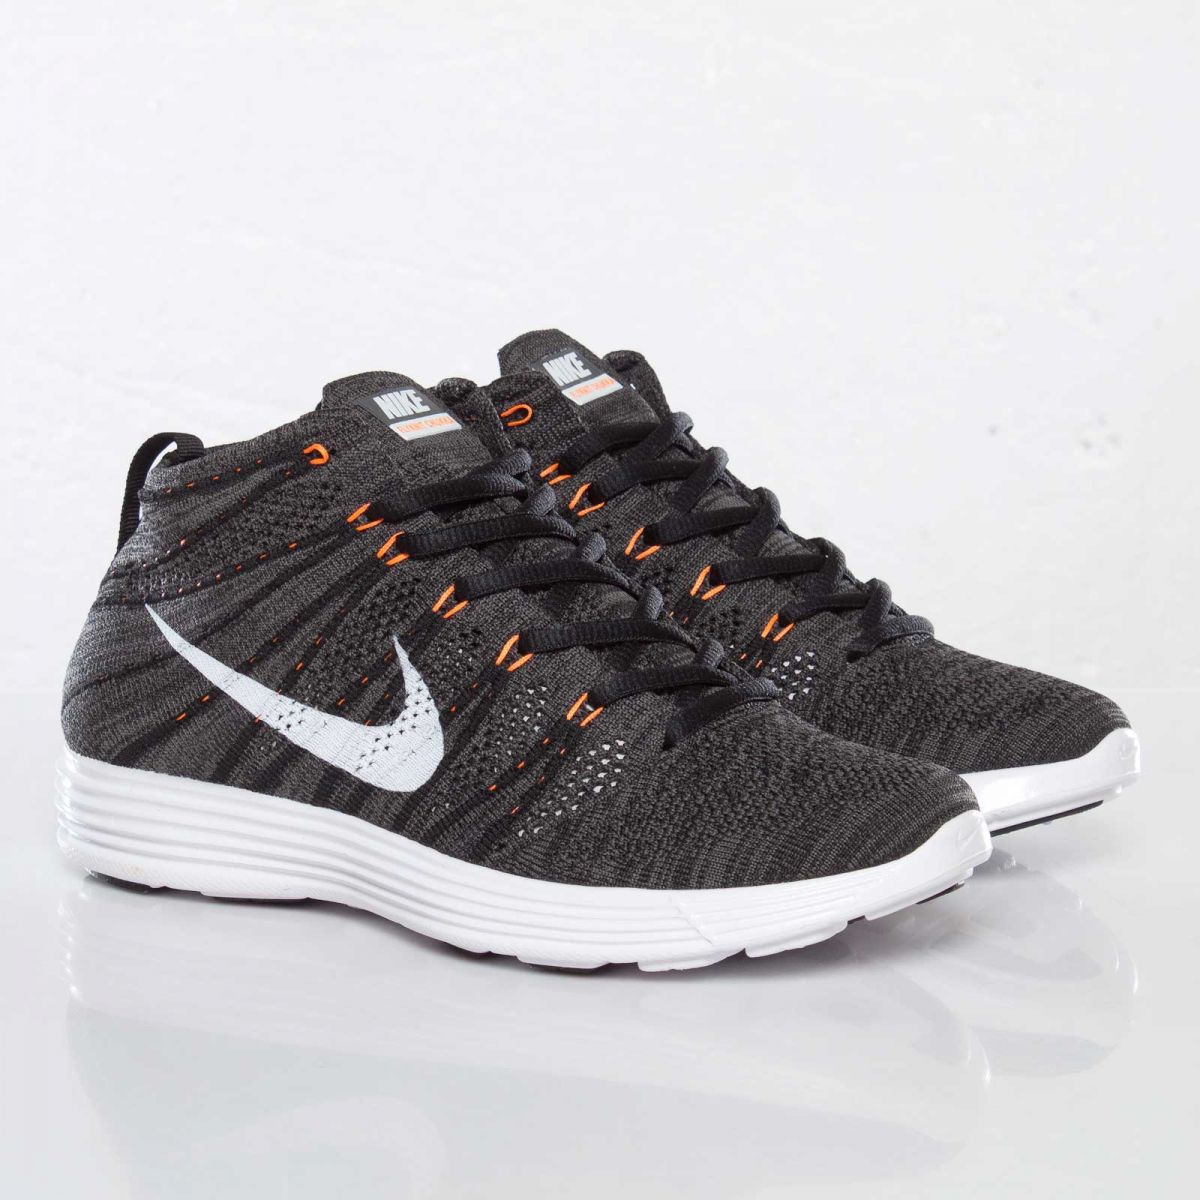 3a8d1ee066d782 A detailed look at the new Nike Lunar Flyknit Chukka in Midnight Fog   White    Total Orange